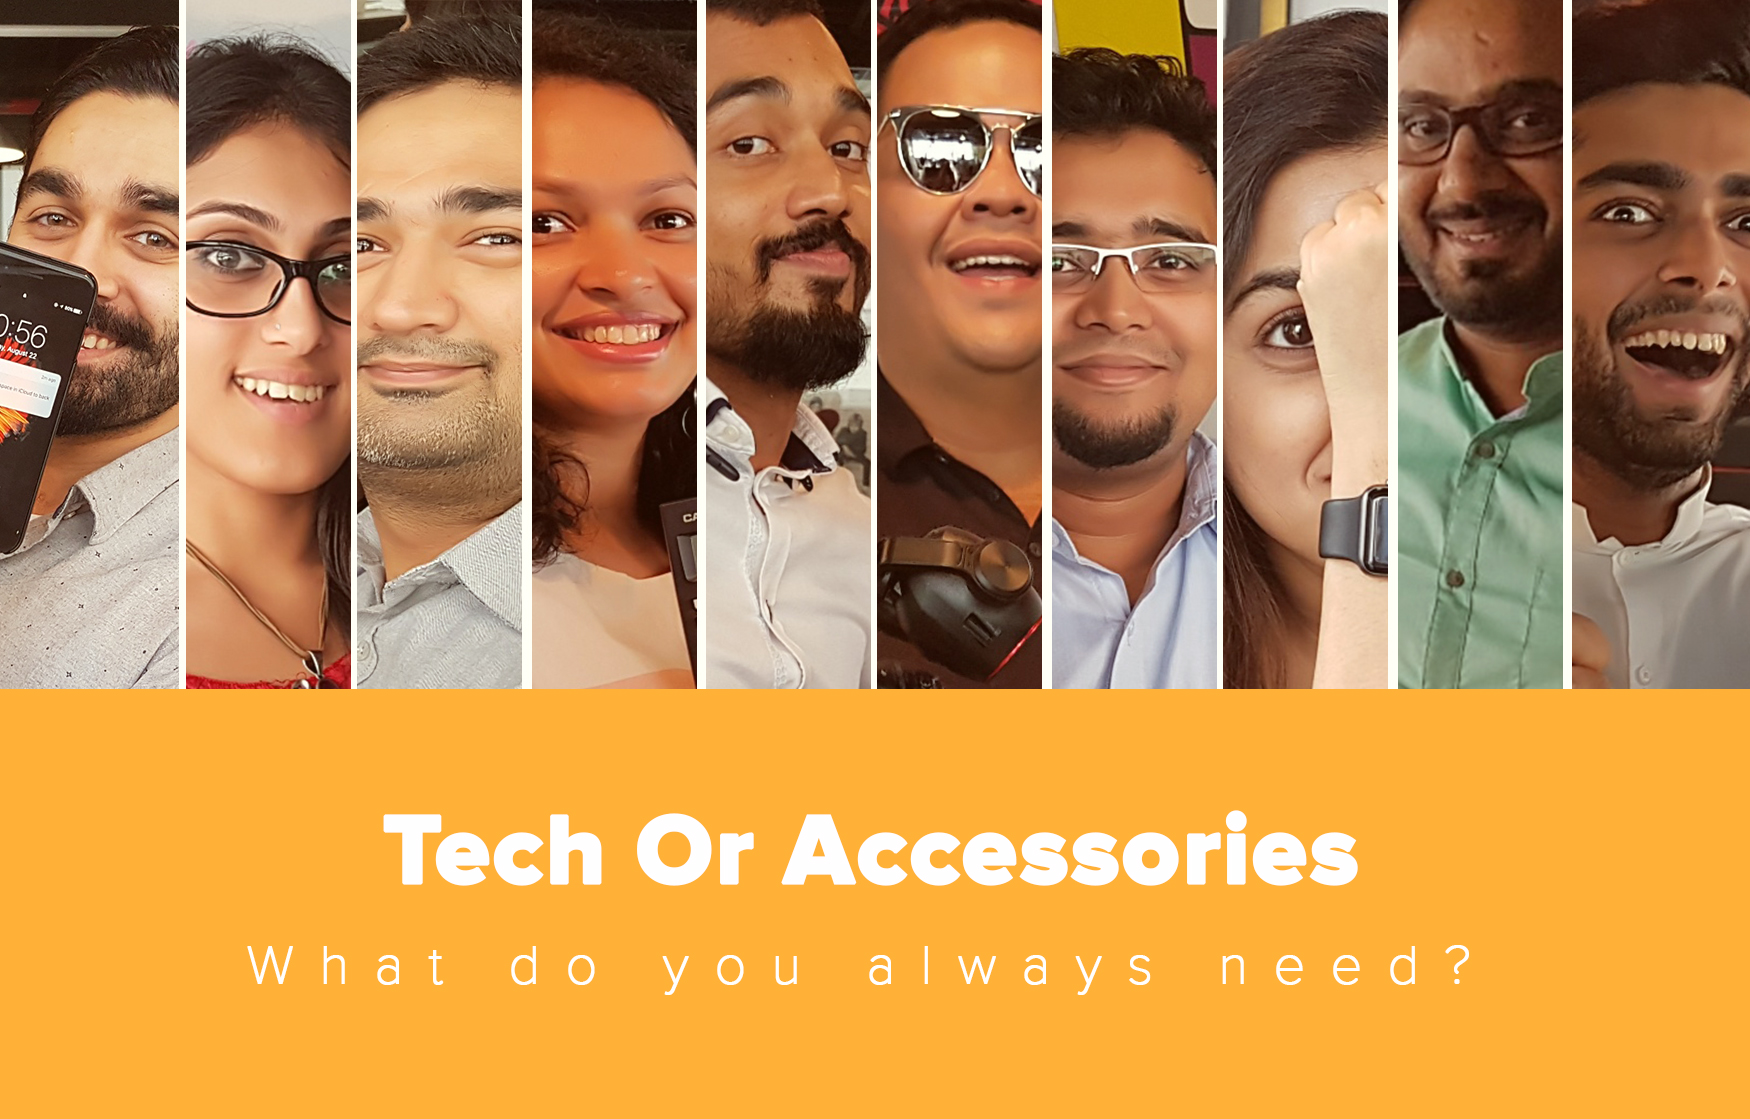 Tech or Accessories - What do you always need?